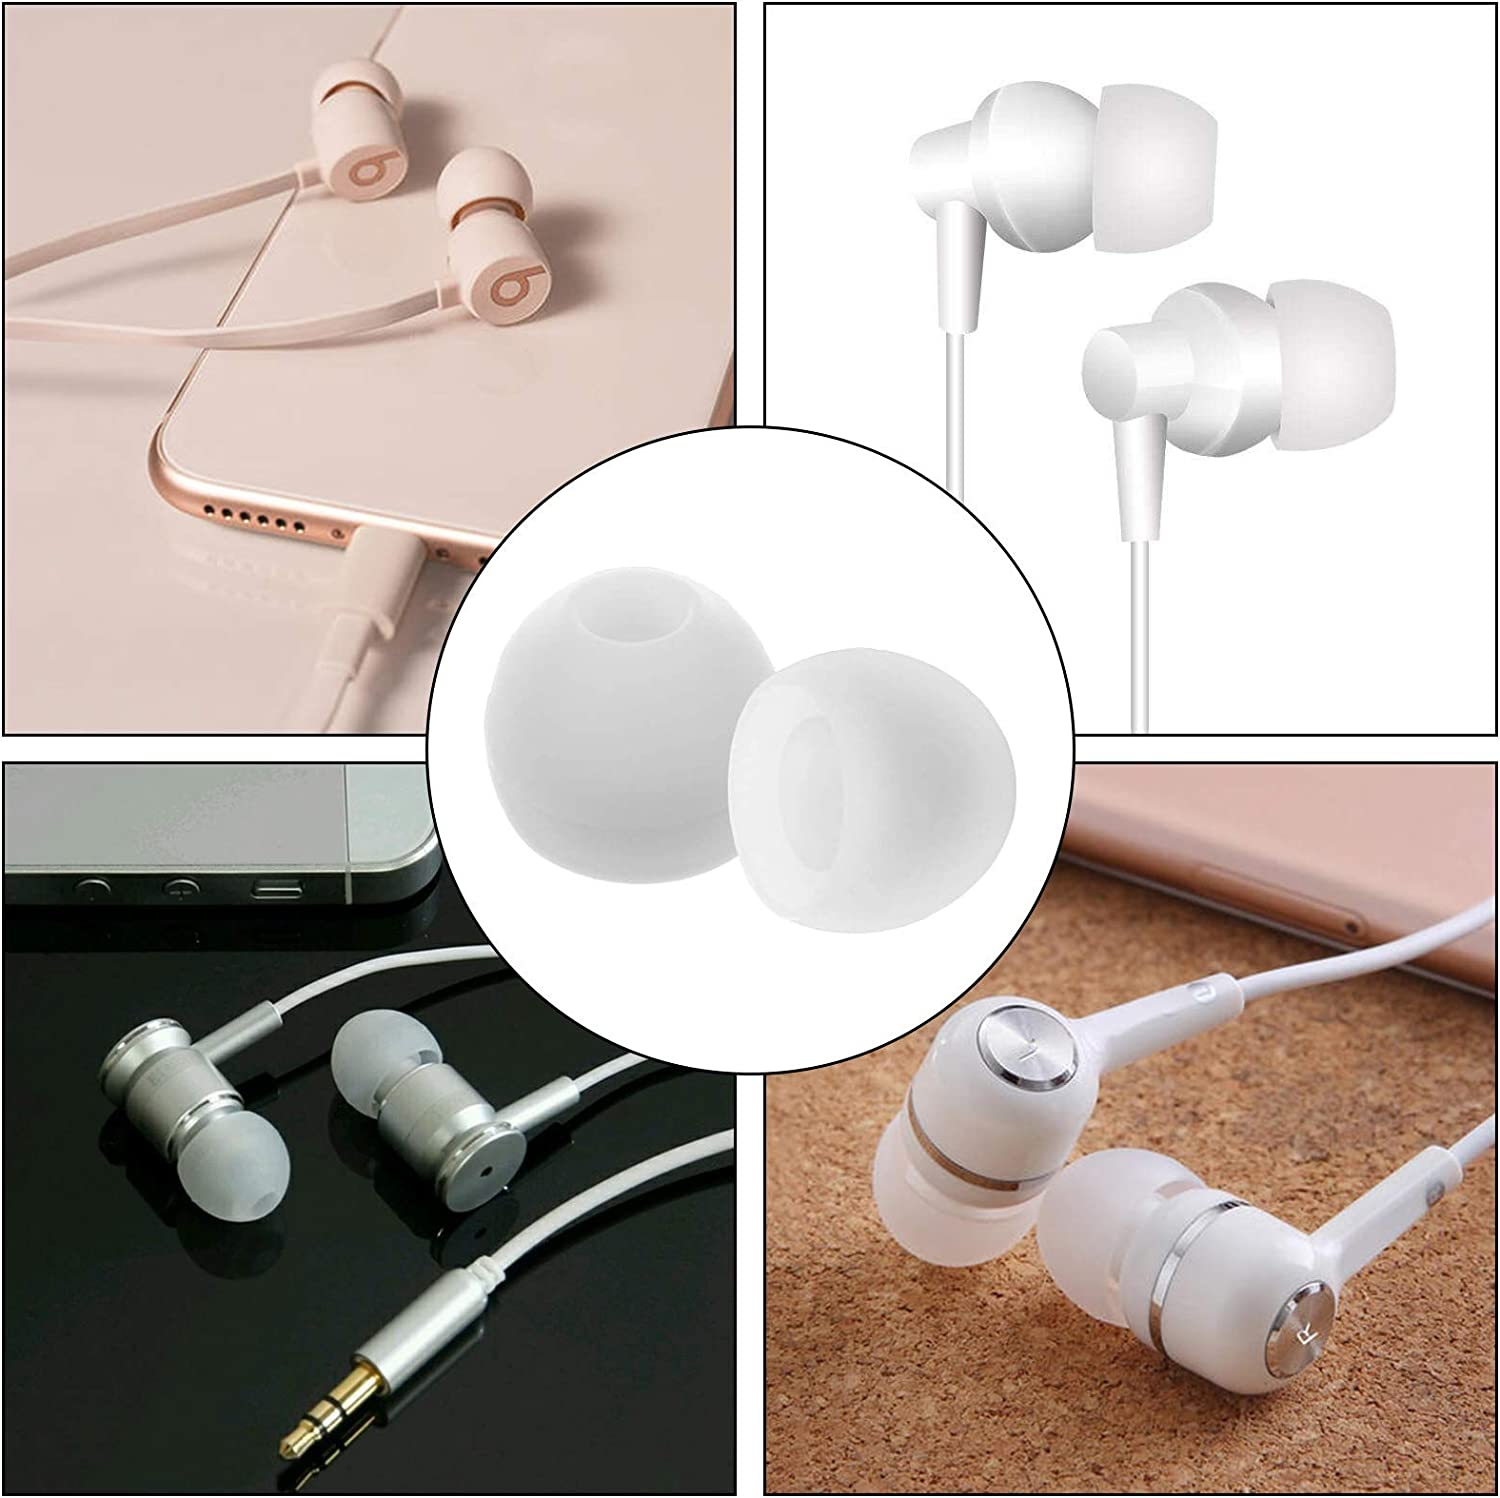 WIFUN Eartips Silicone 20 Pcs Replacement Earphone Earbuds Tips Compatible for Sport Bluetooth Headphones